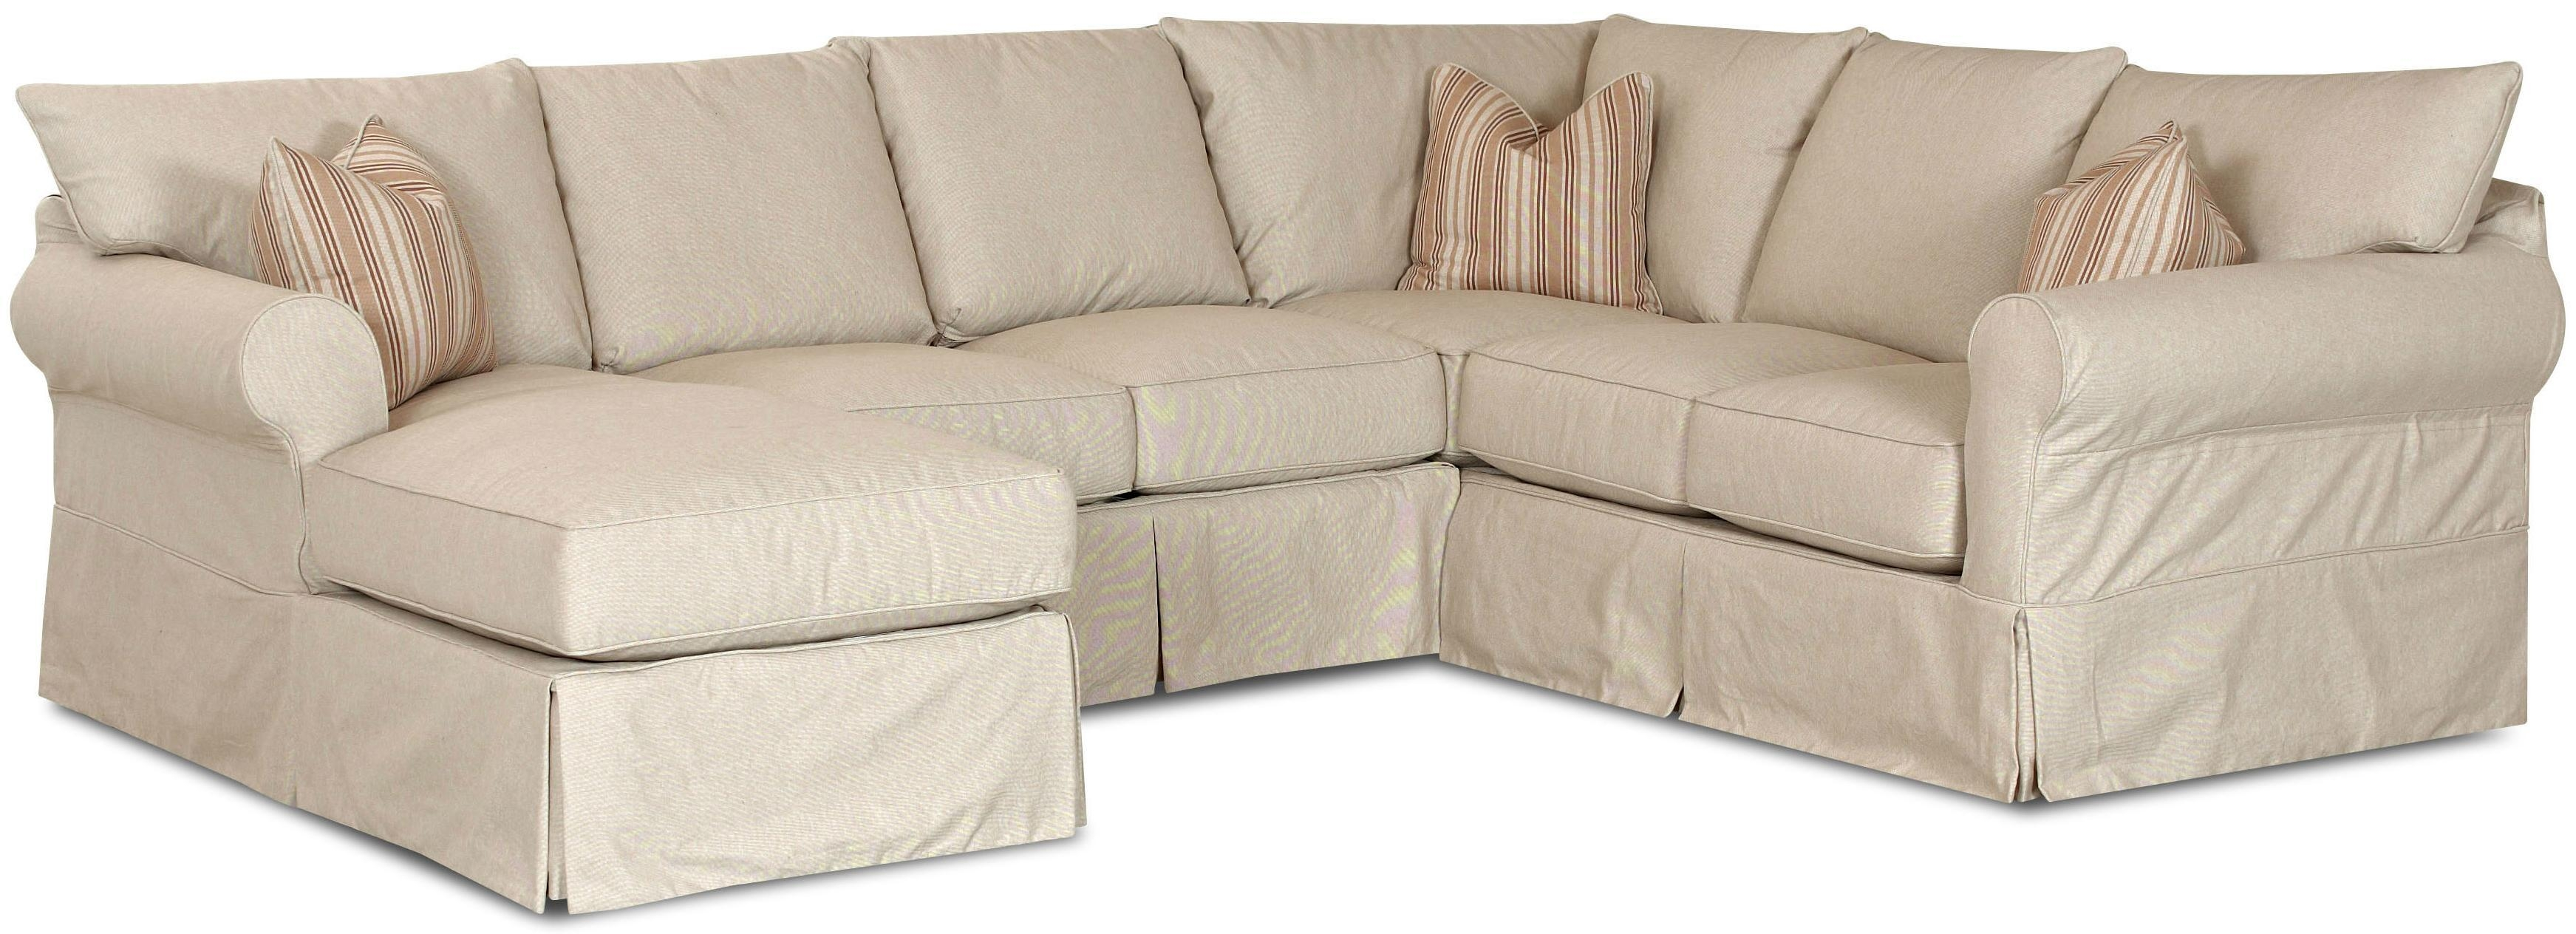 Inspirations: Interesting Furniture Sectional Sofa Slipcovers For In Chaise Sectional Slipcover (Image 9 of 15)